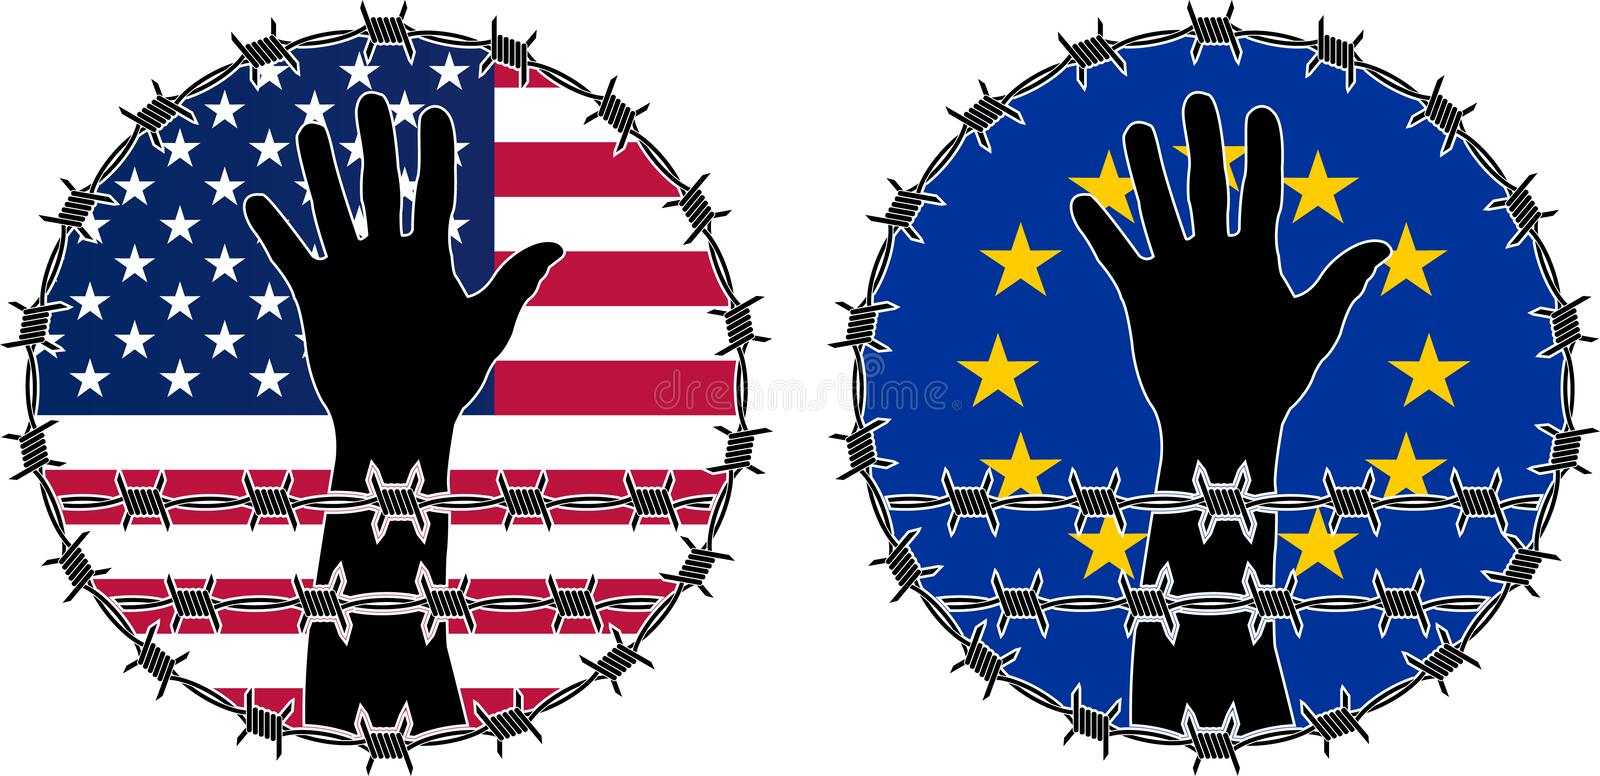 Download Violation Of Human Rights In USA And EU Stock Vector - Image: 30935988